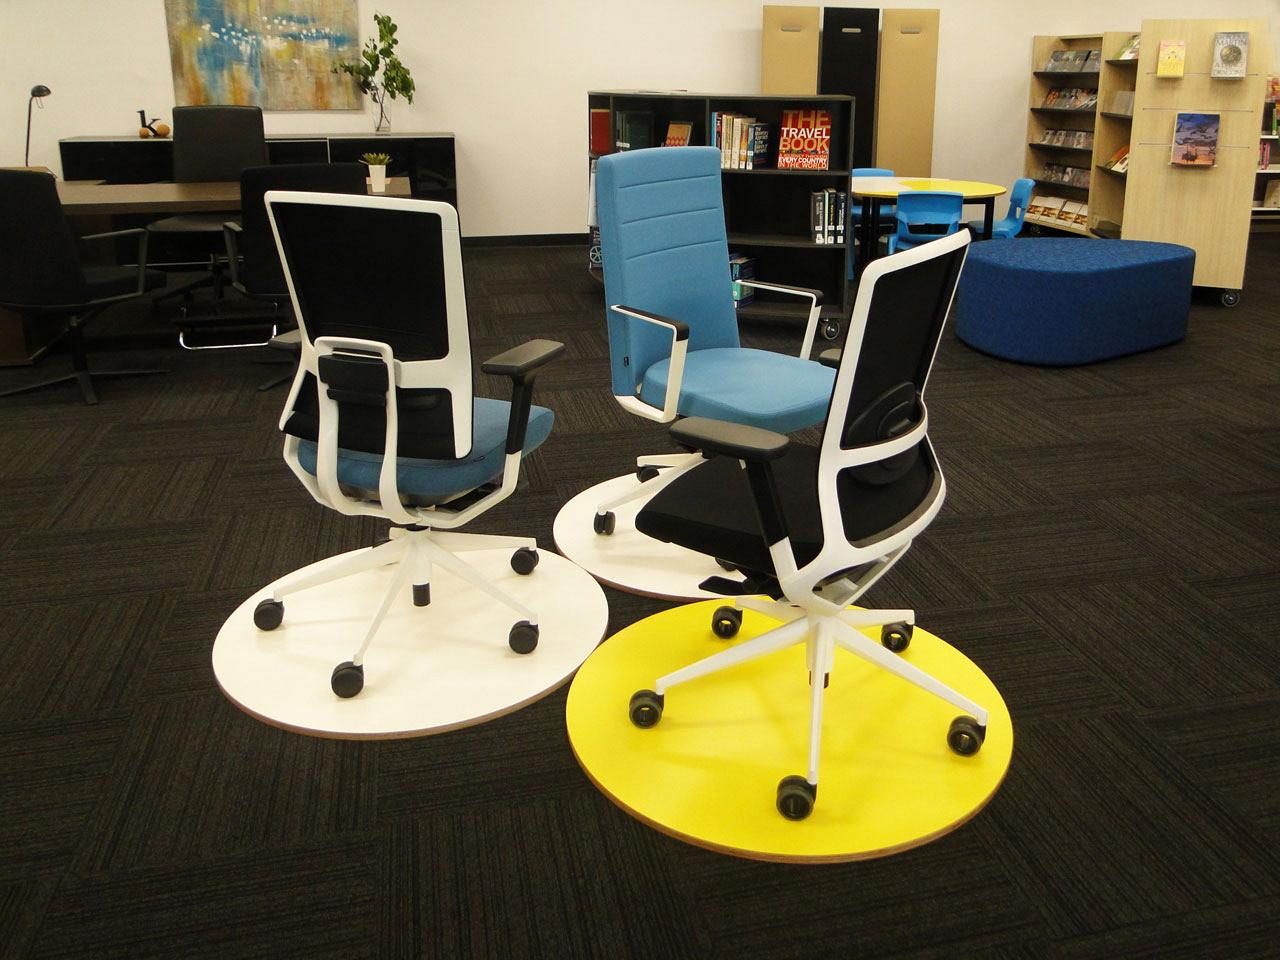 Resource Furniture, nuevo socio especializado en oficinas, bibliotecas y educación 6